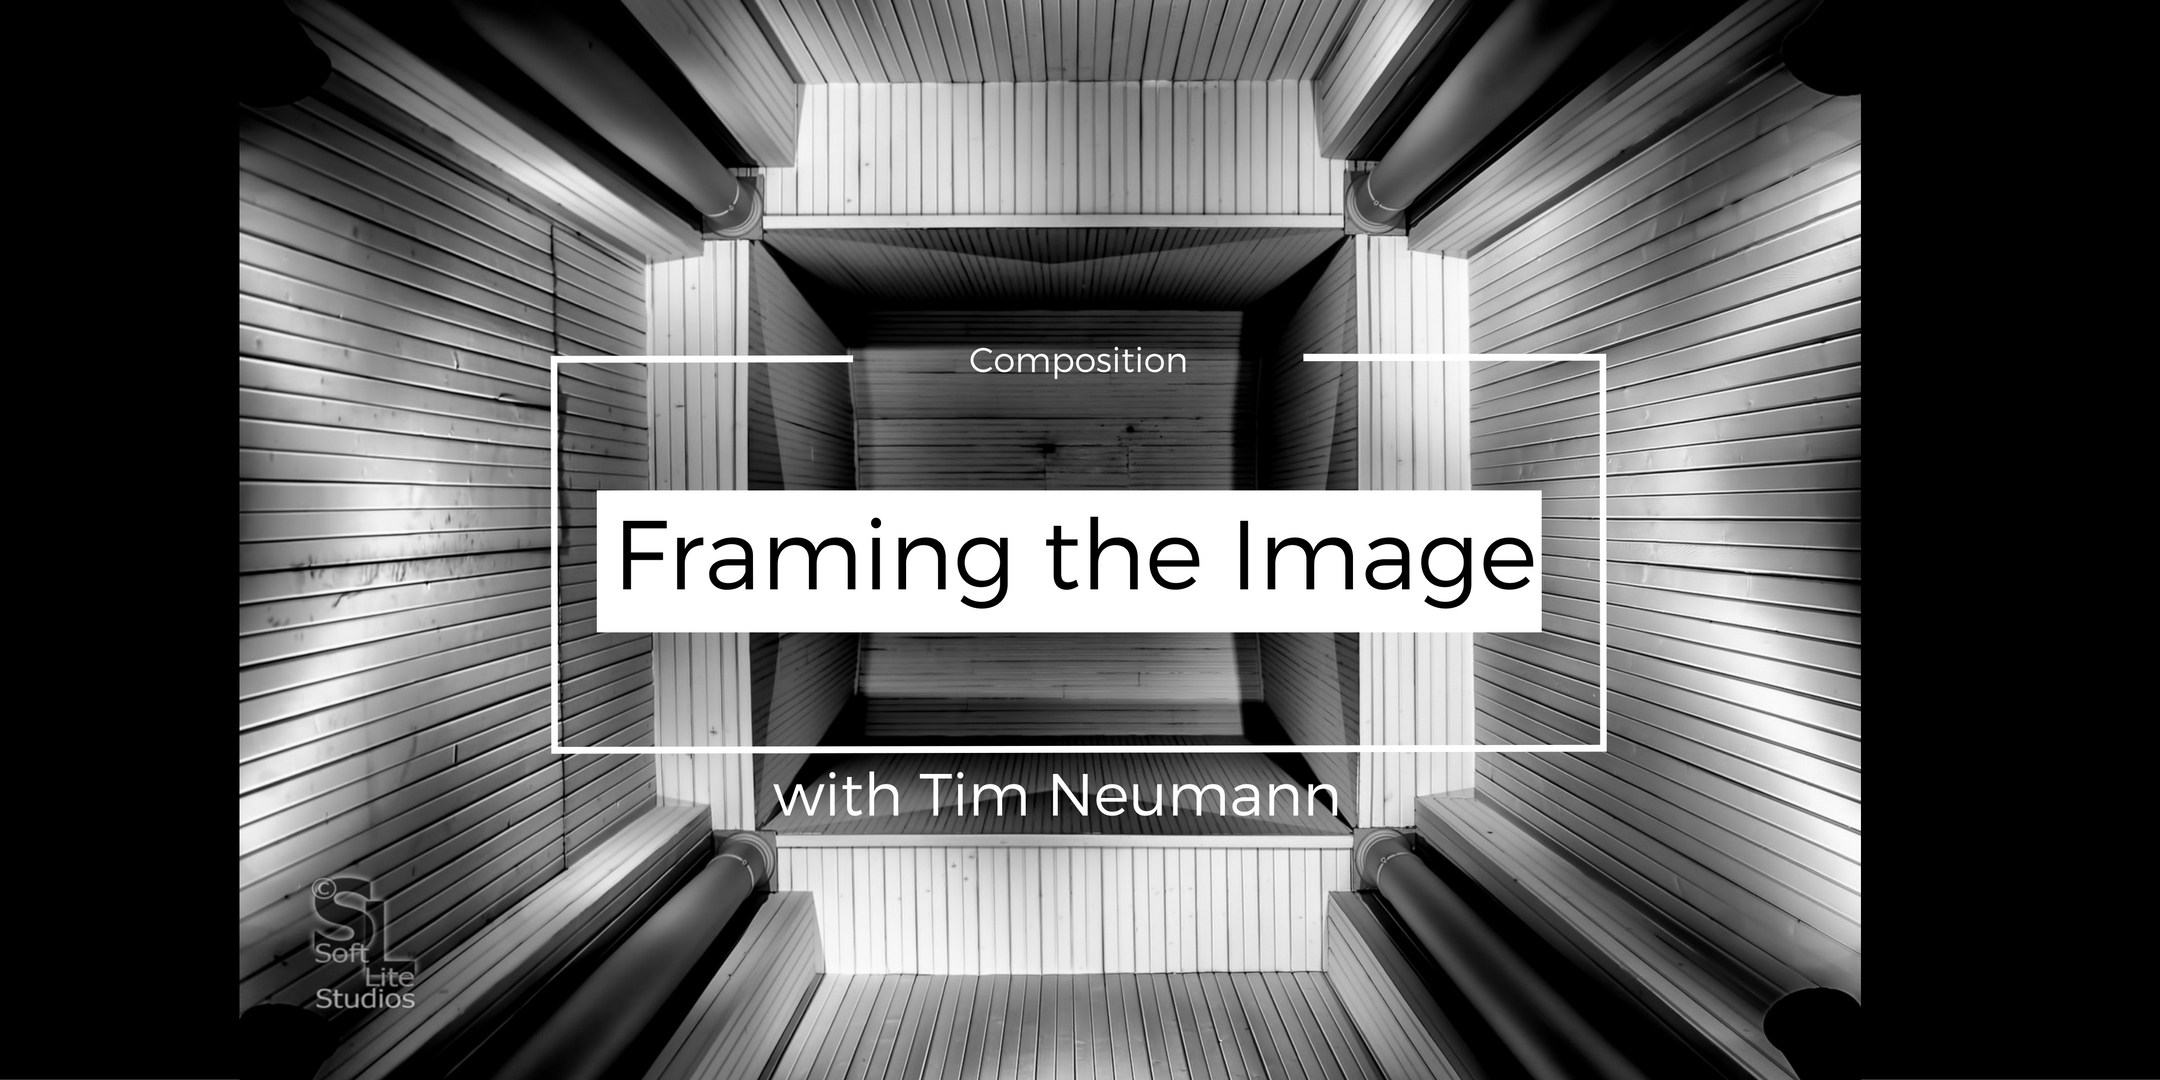 Framing the Image with Tim Neumann